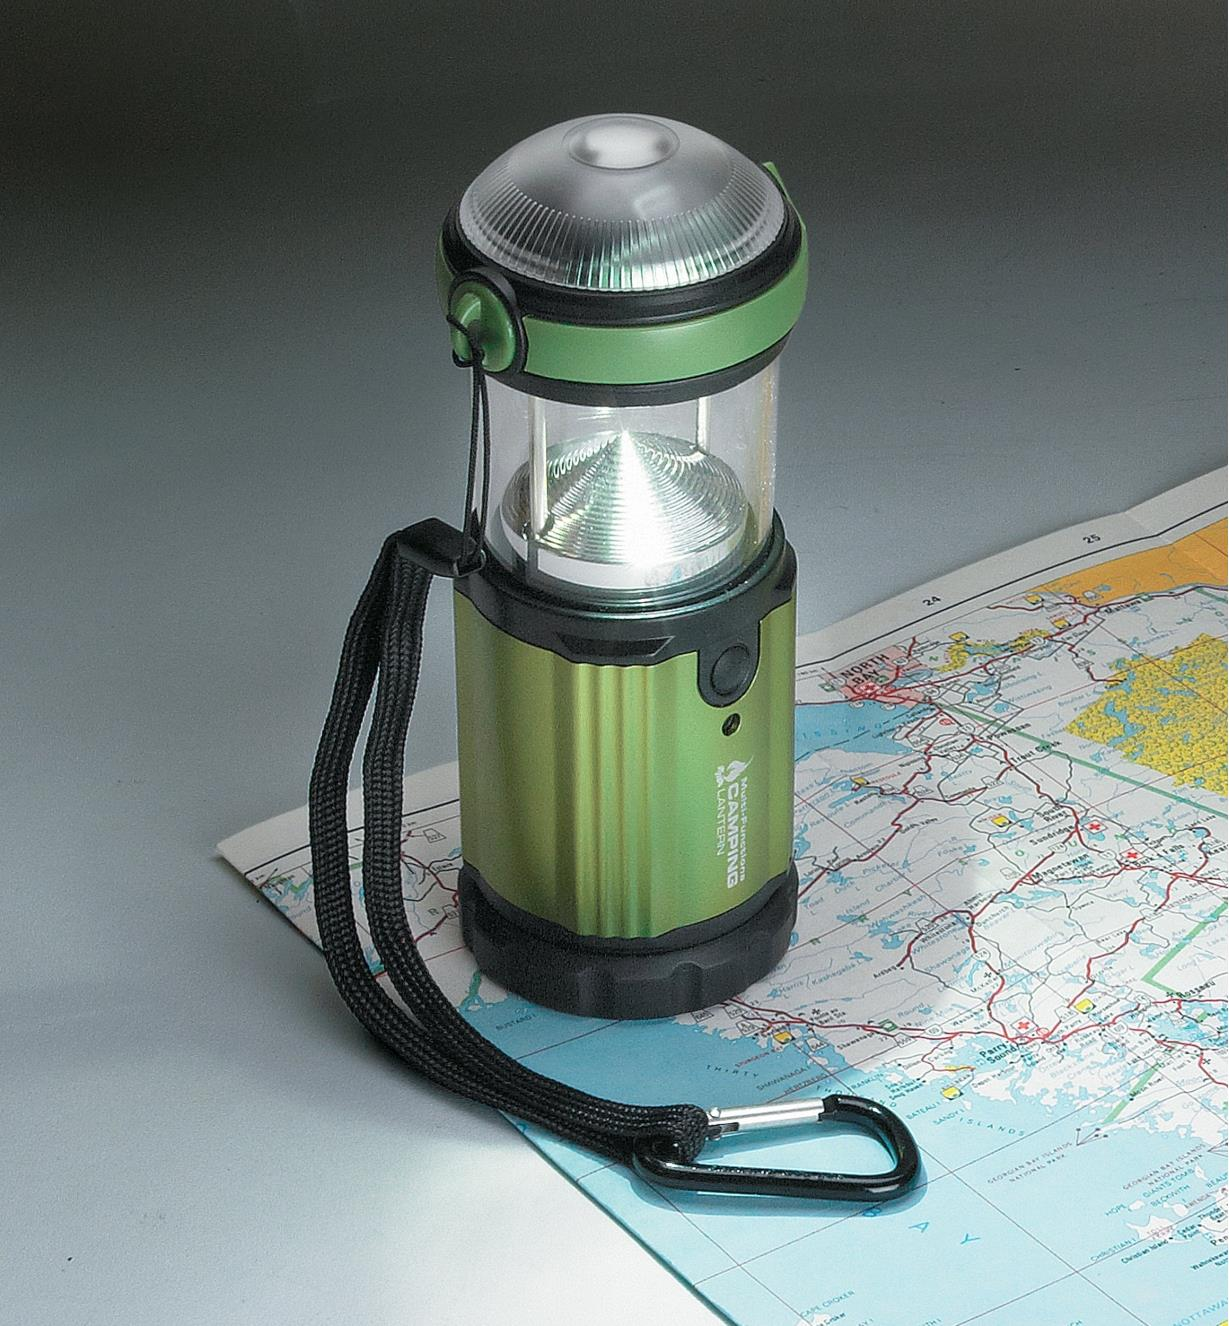 Cree LED Camping Lantern sitting on a map